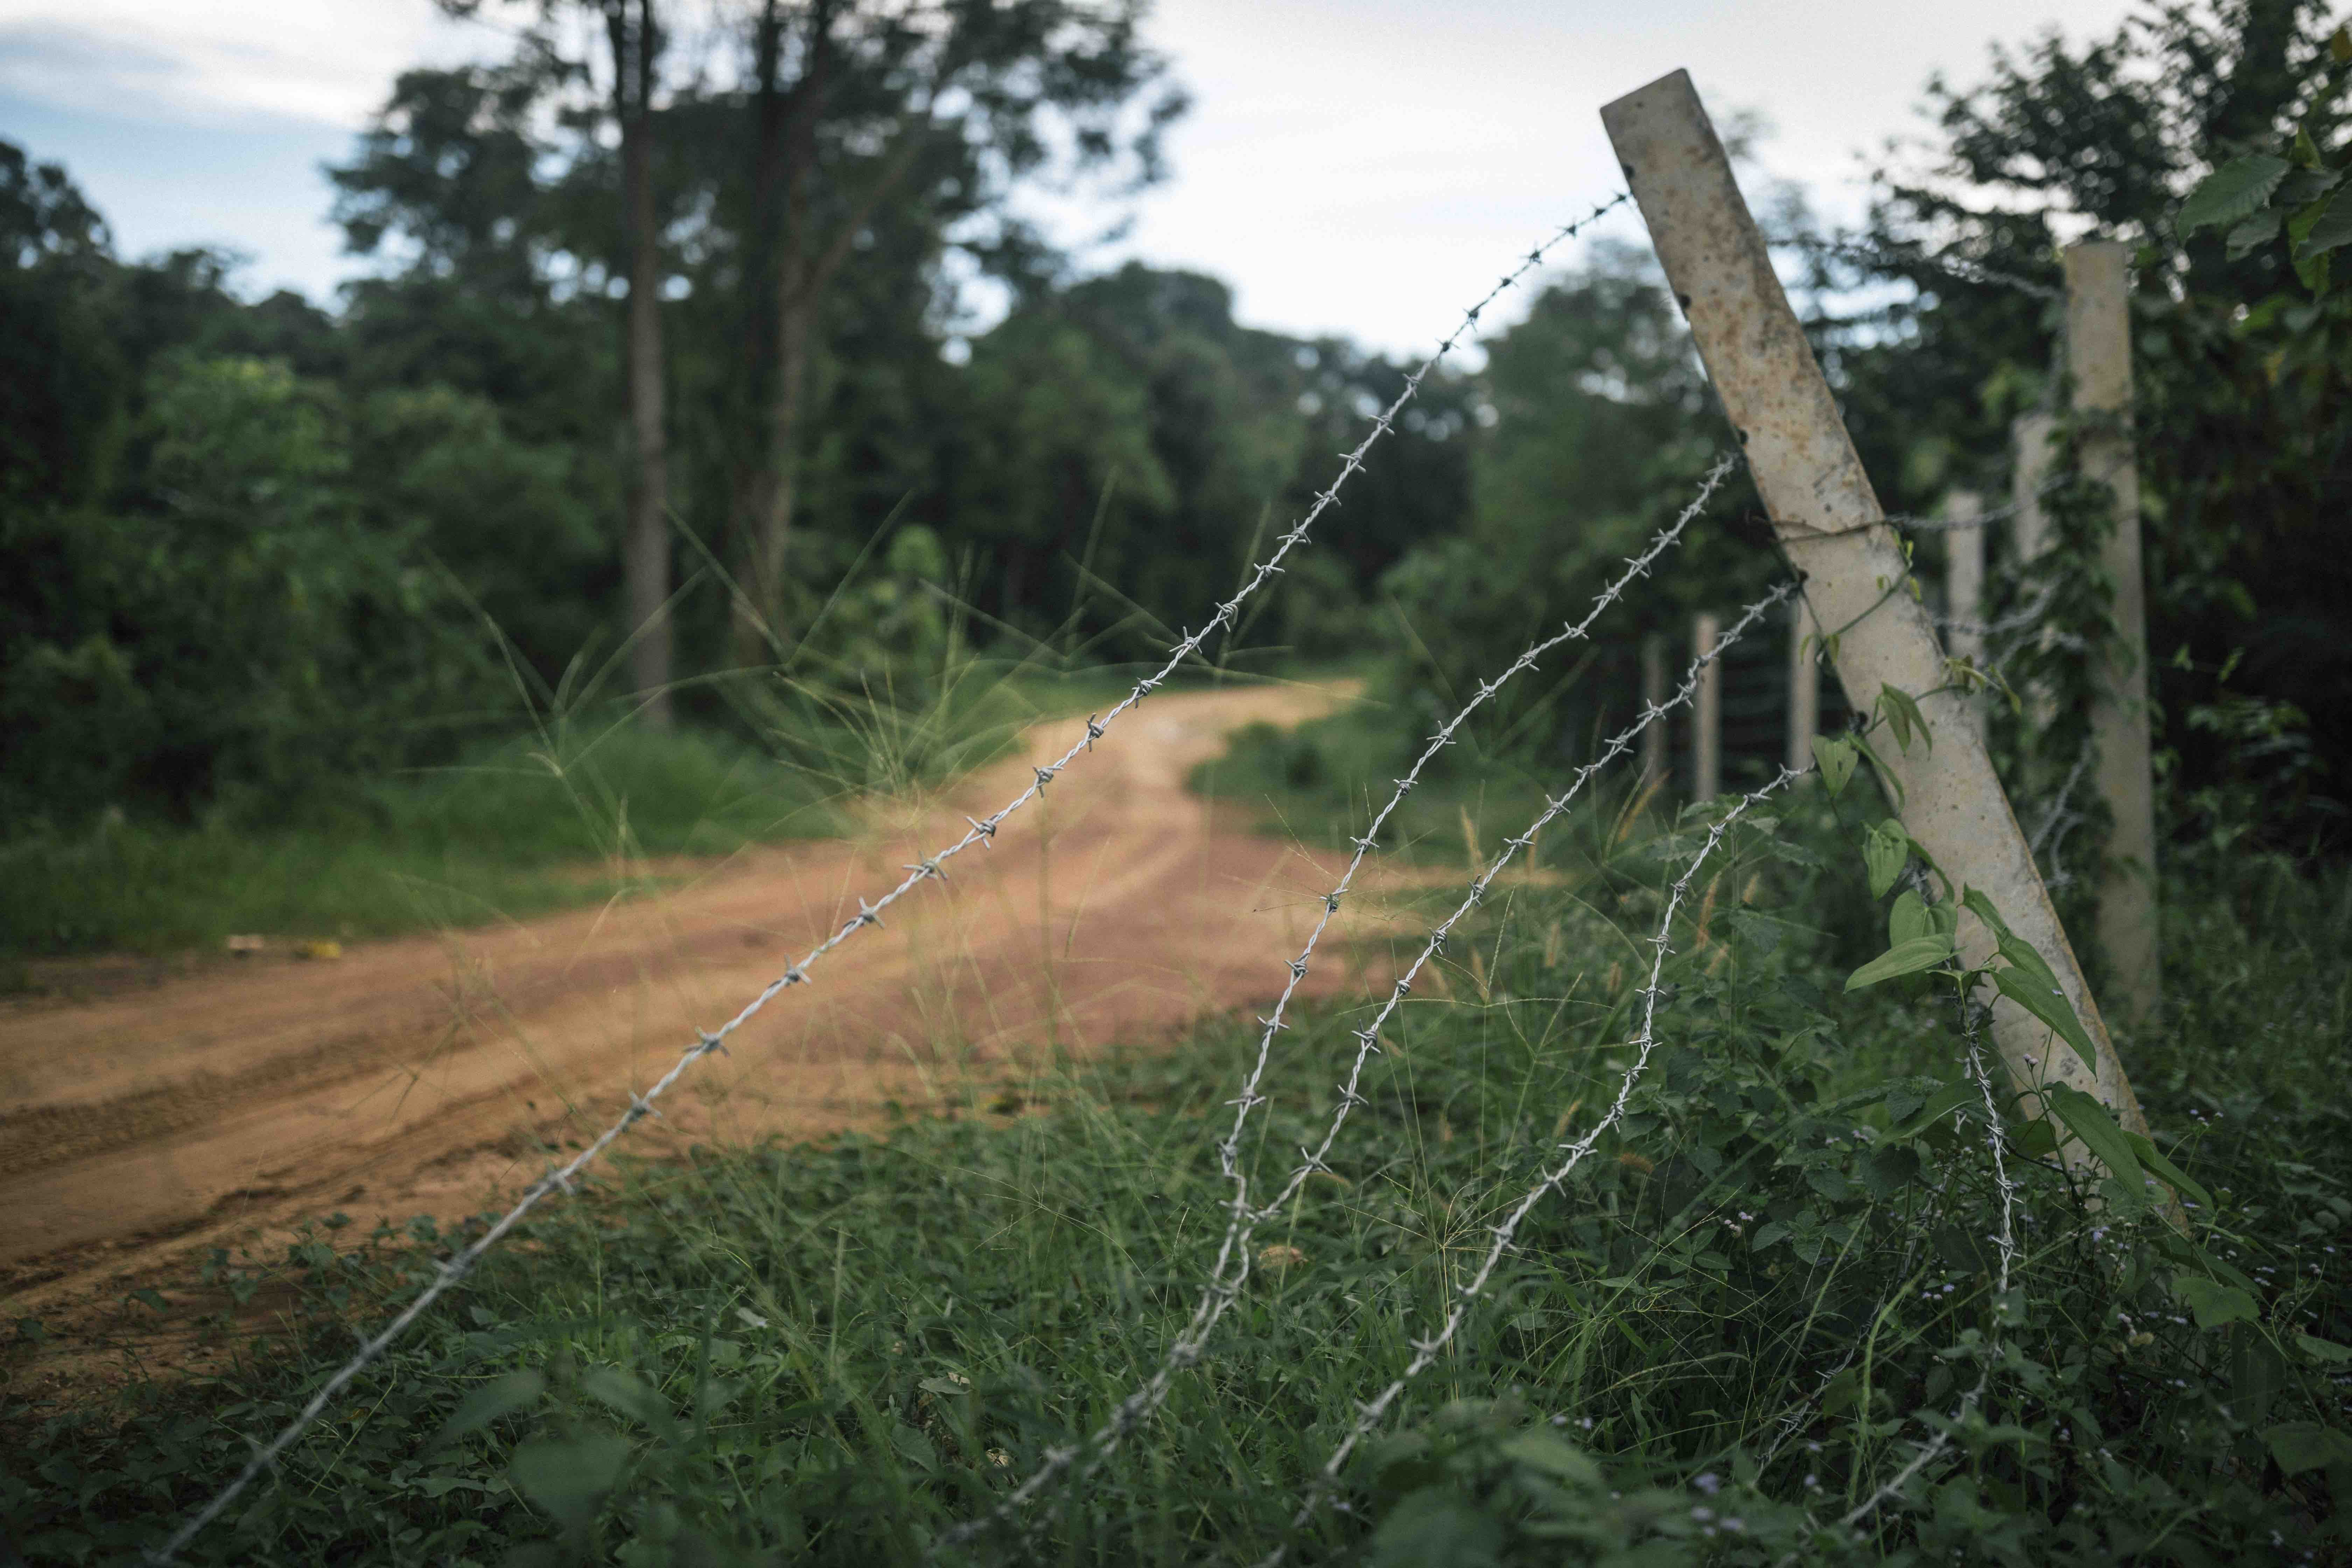 Broken fencing and torn up land near small watering holes where the elephants like to gather in Khao Yai. The barbed wire fencing does little to deter the animals.